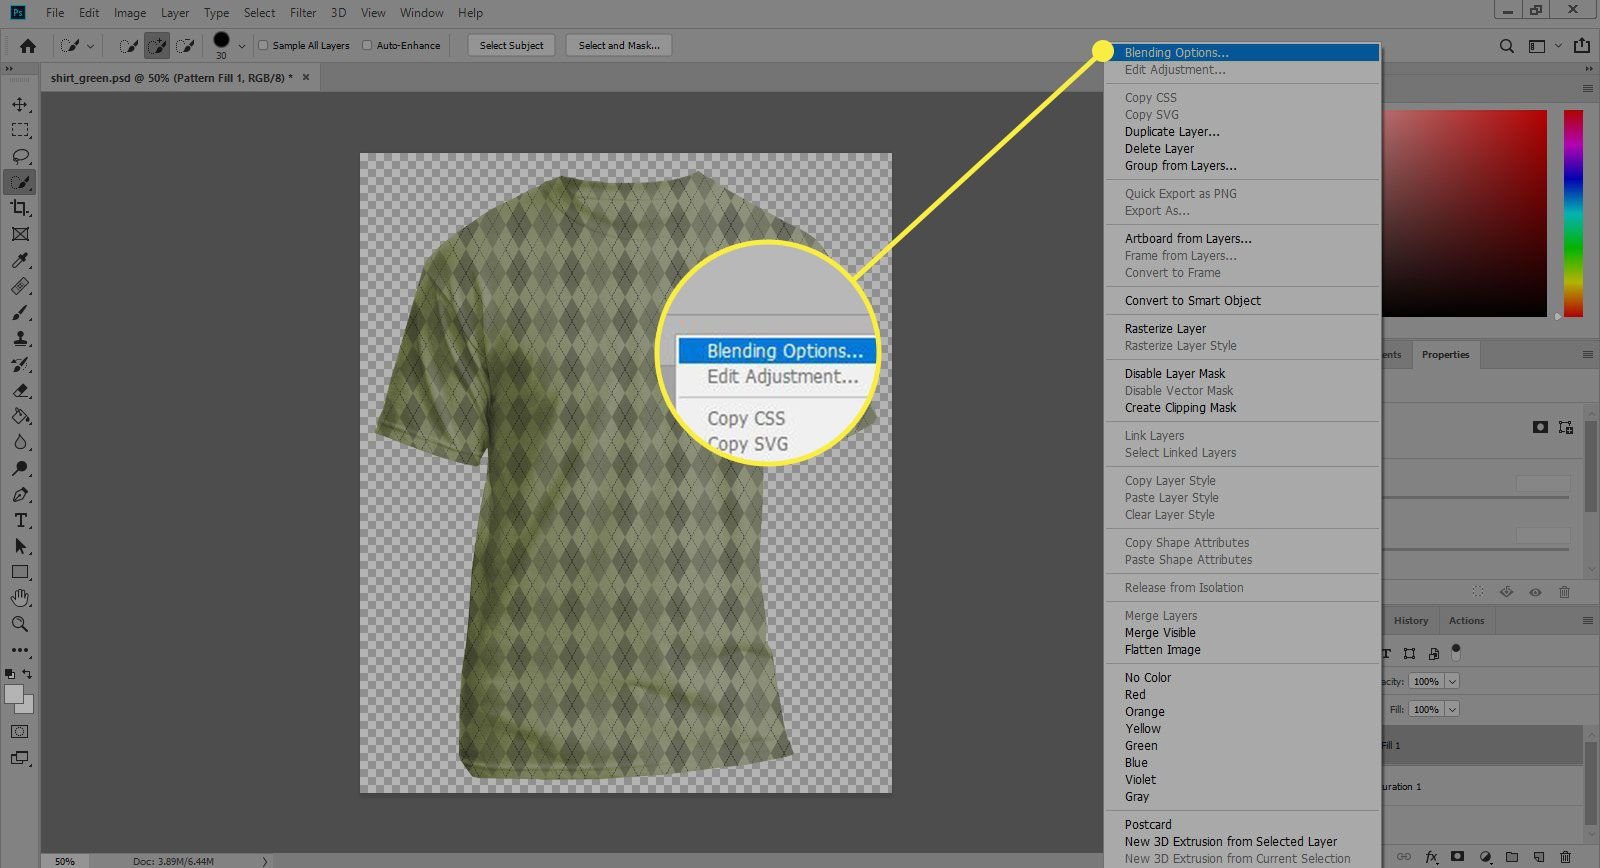 A screenshot of Photoshop with the Blending Options command highlighted